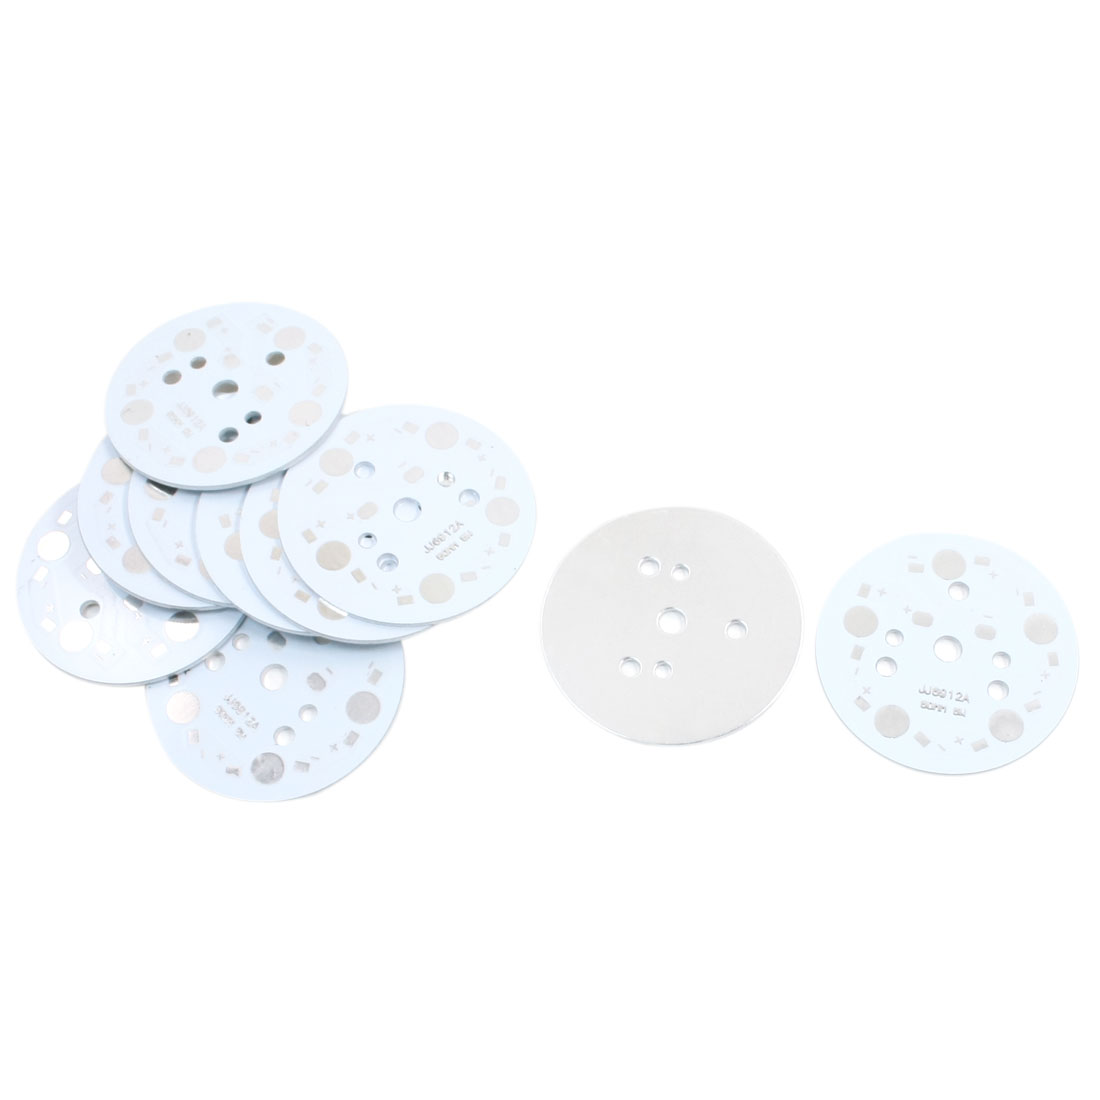 10Pcs Aluminum Base Plate DIY PCB 49mm Dia for 5 x 1W 3W 5W LEDs in Series